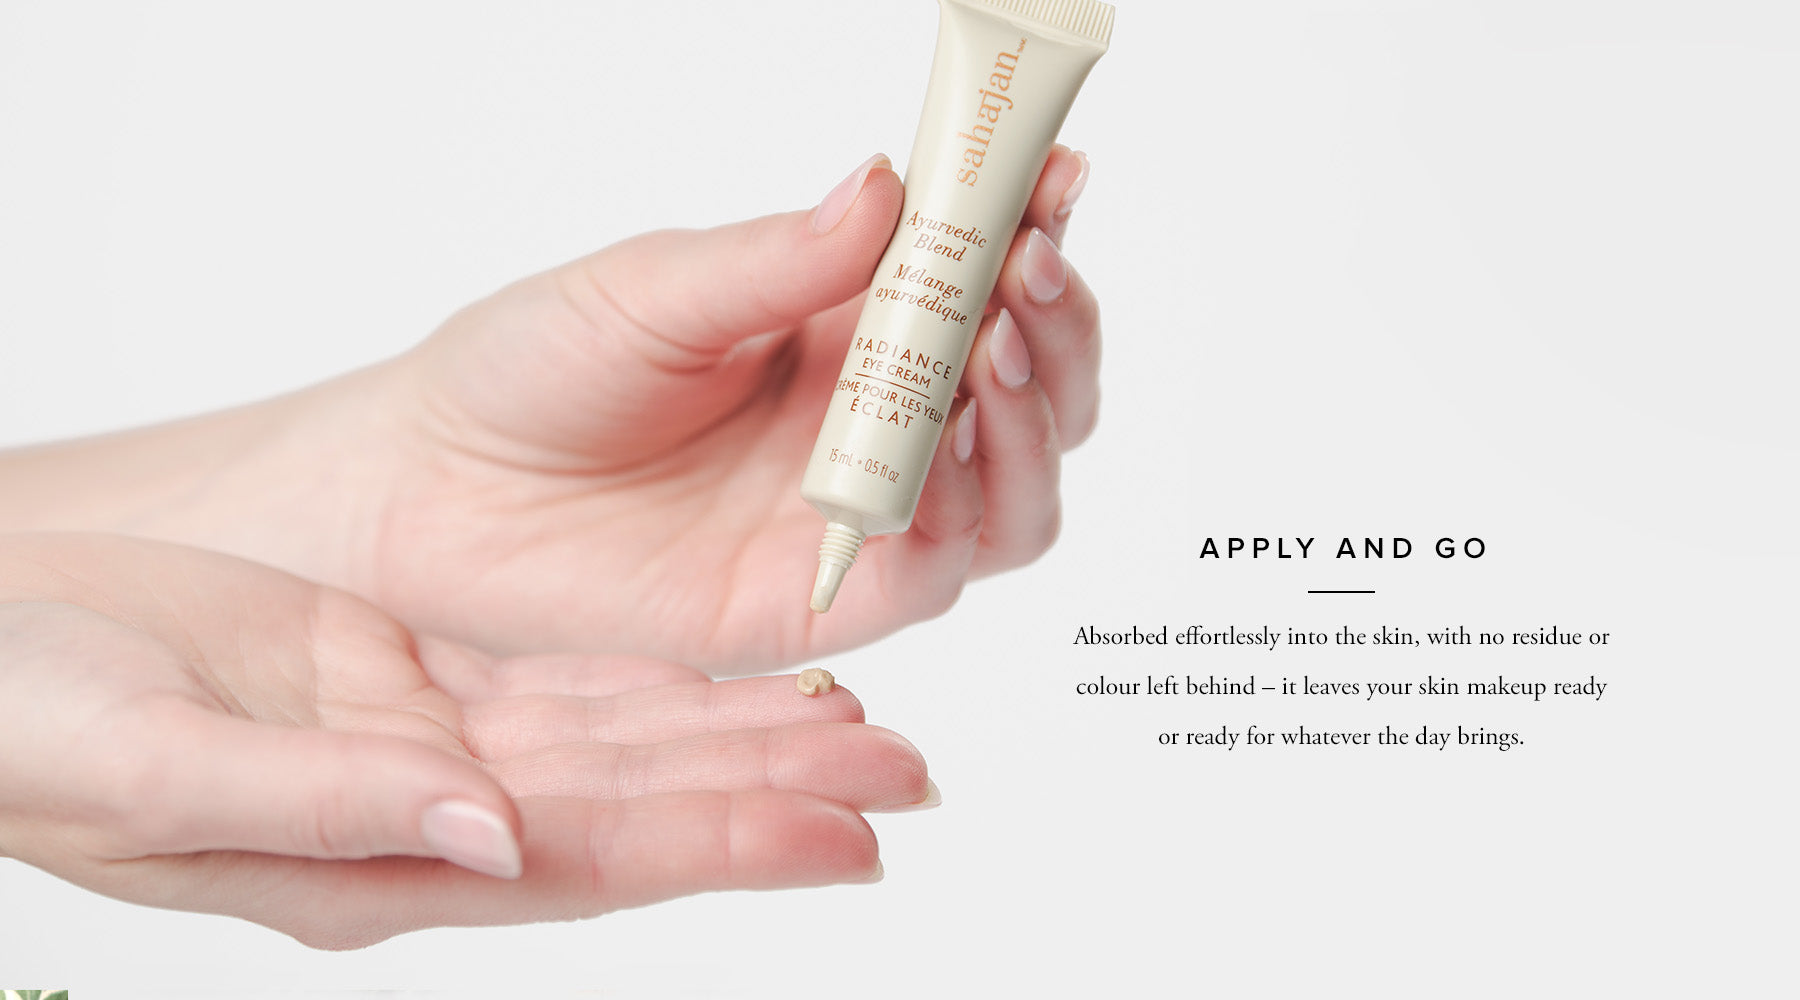 Apply and Go  Absorbed effortlessly into the skin, with no residue or colour left behind – it leaves your skin makeup ready or ready for whatever the day brings.